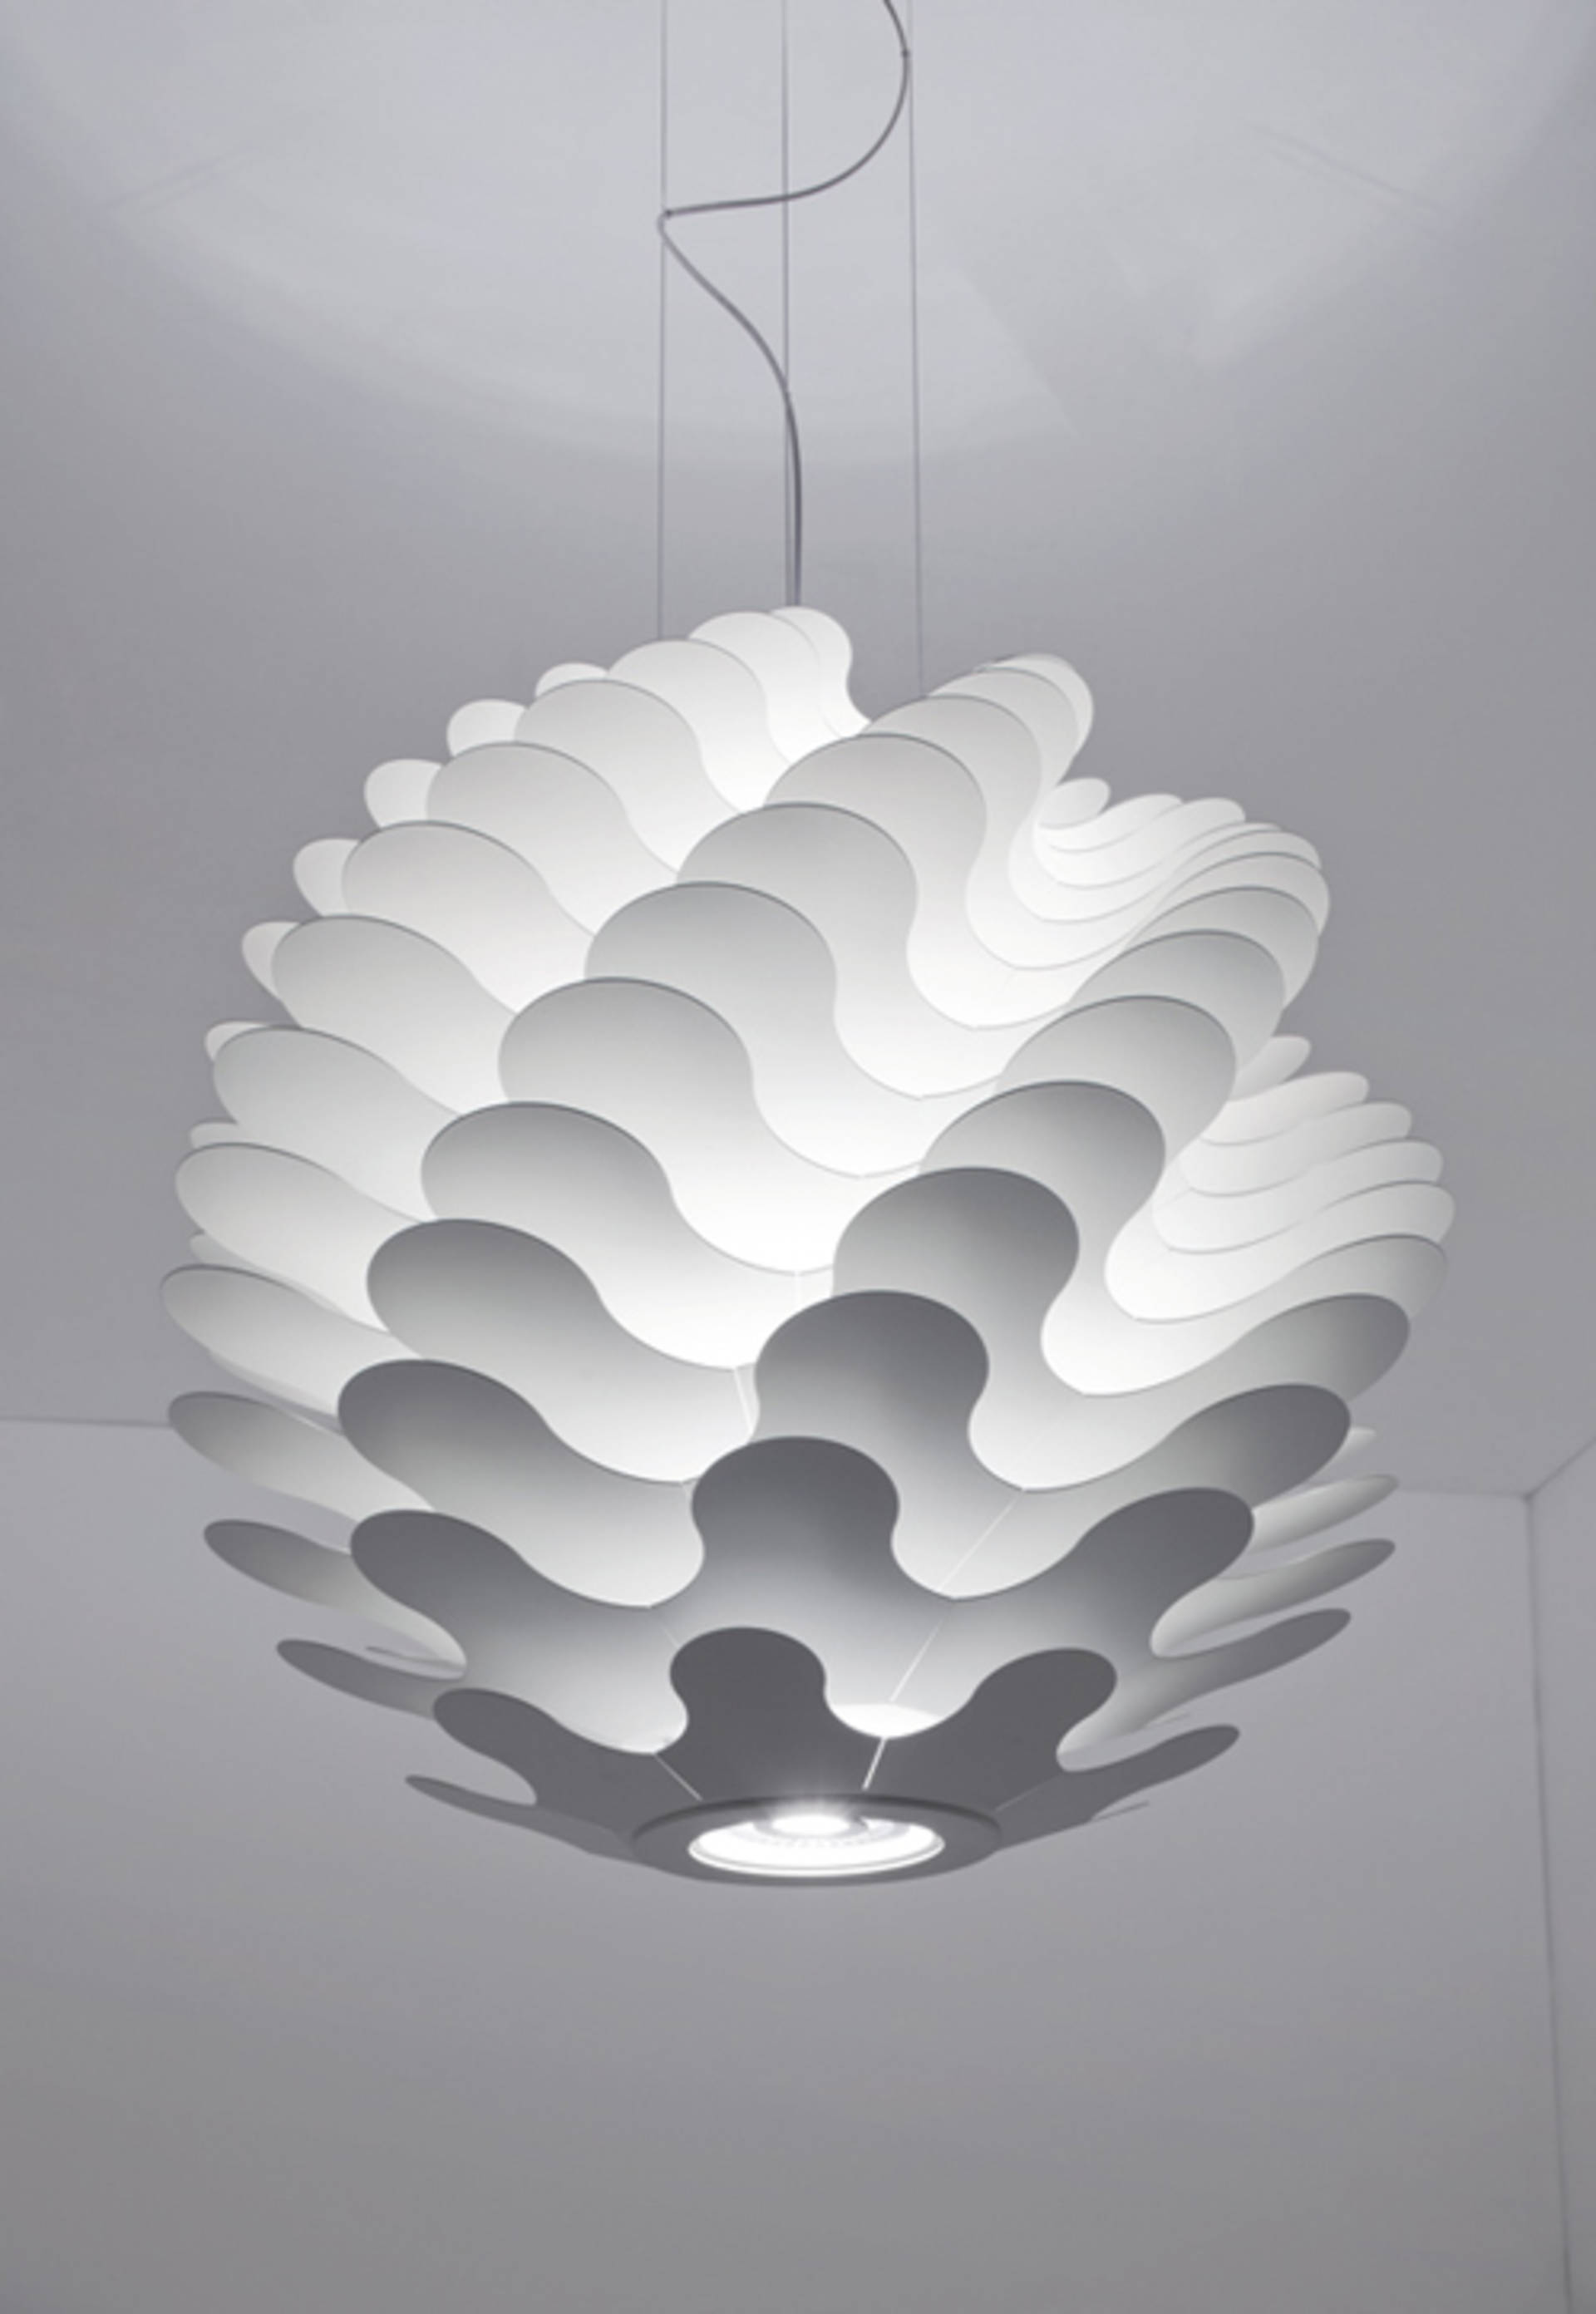 Libera Lamp from Lucente an Unusual Play of Light and Shadow